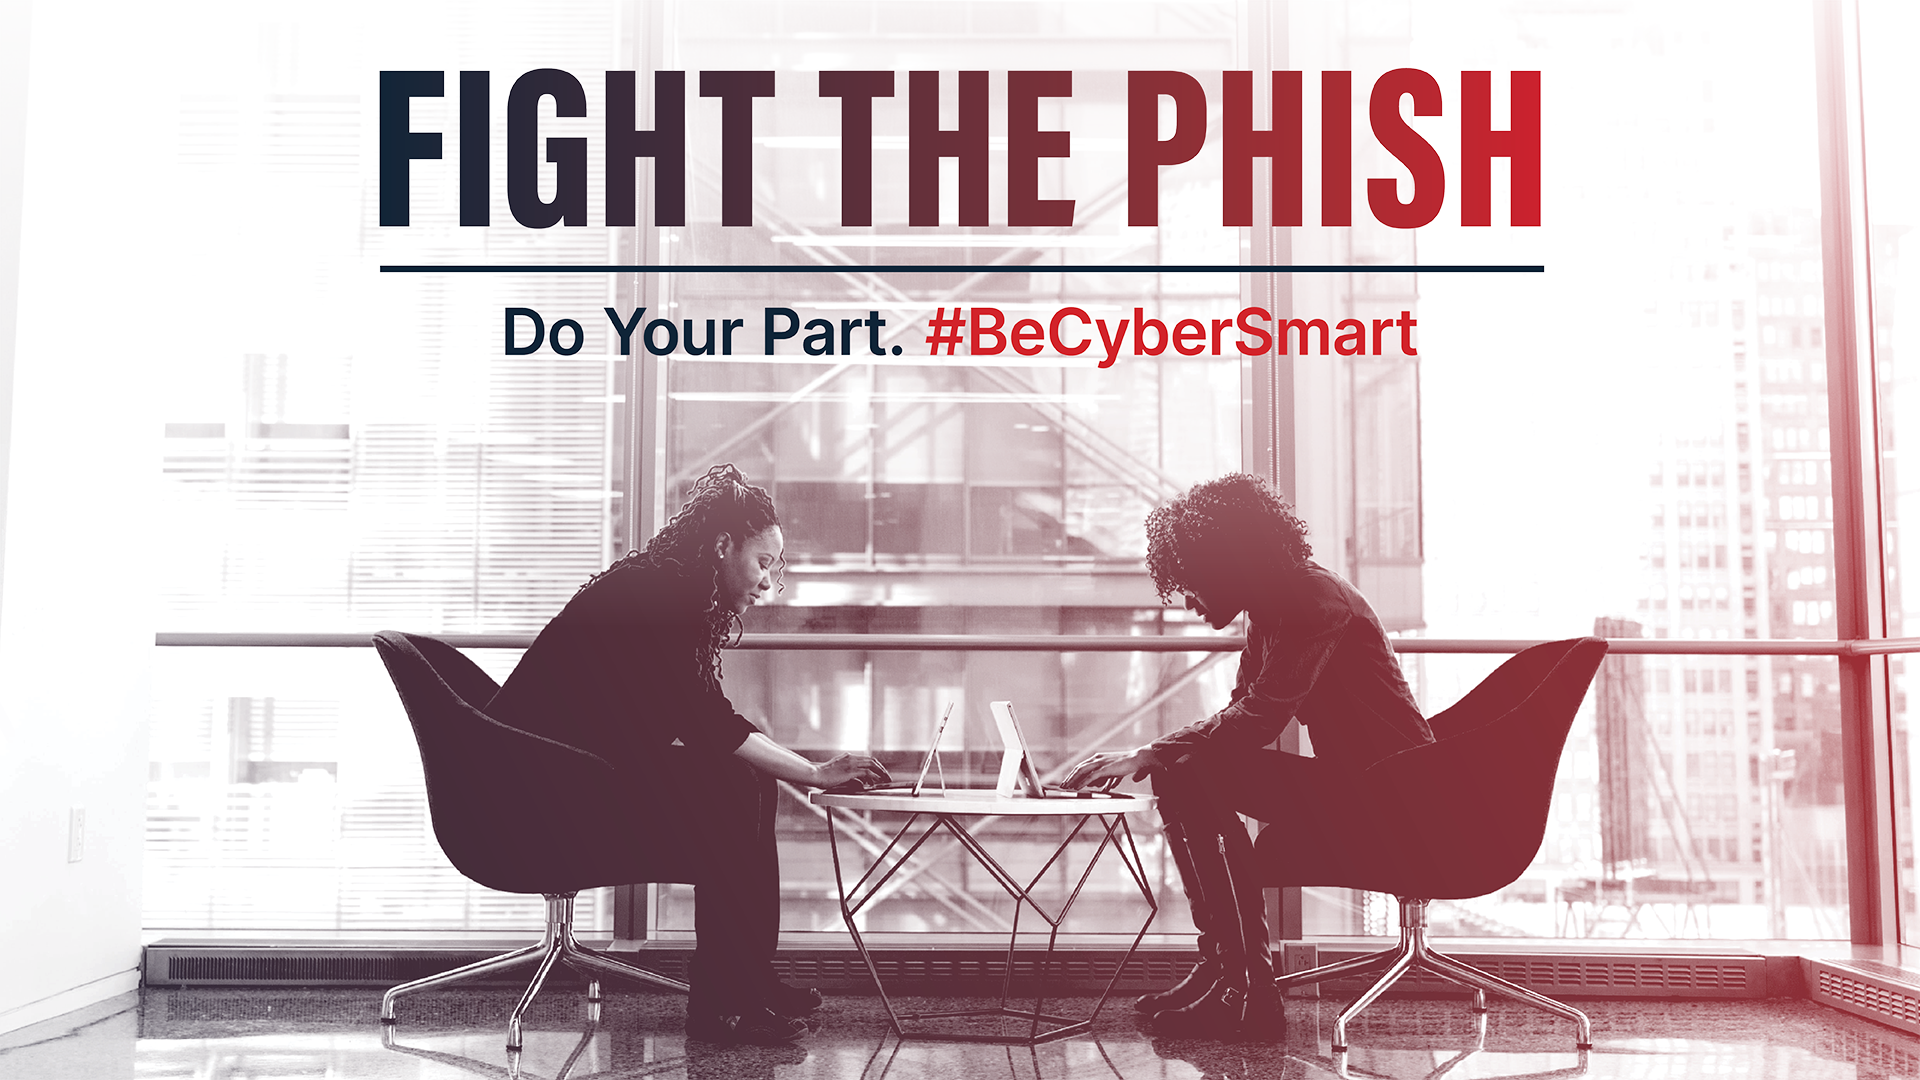 Fight the phish. Do your part. #BeCyberSmart